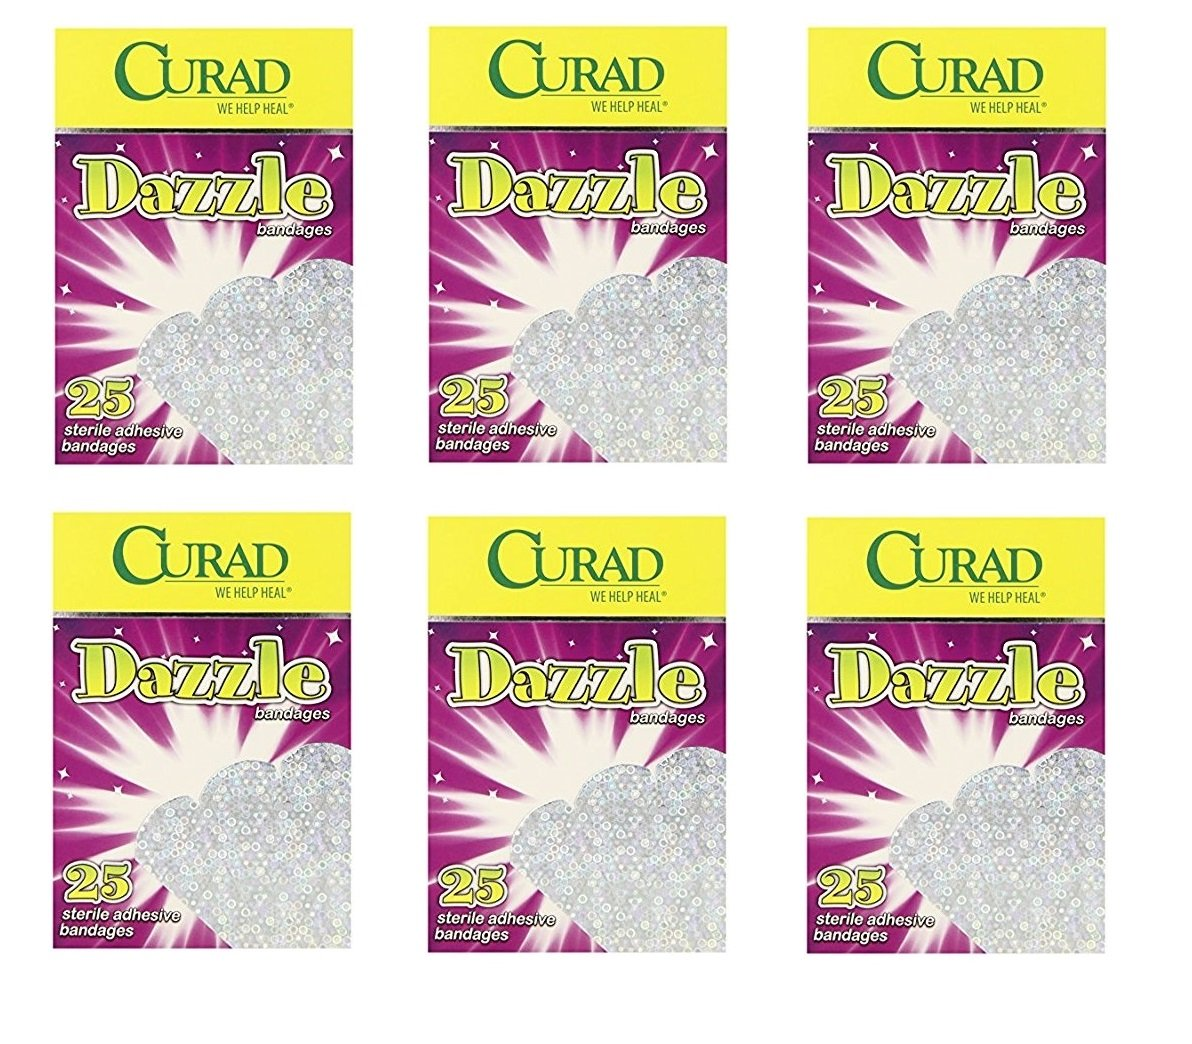 Curad Dazzle Bandages, 25ct (Pack of 6) + FREE Old Spice Deadlock Spiking Glue, Travel Size, .84 Oz by Curad (Image #1)